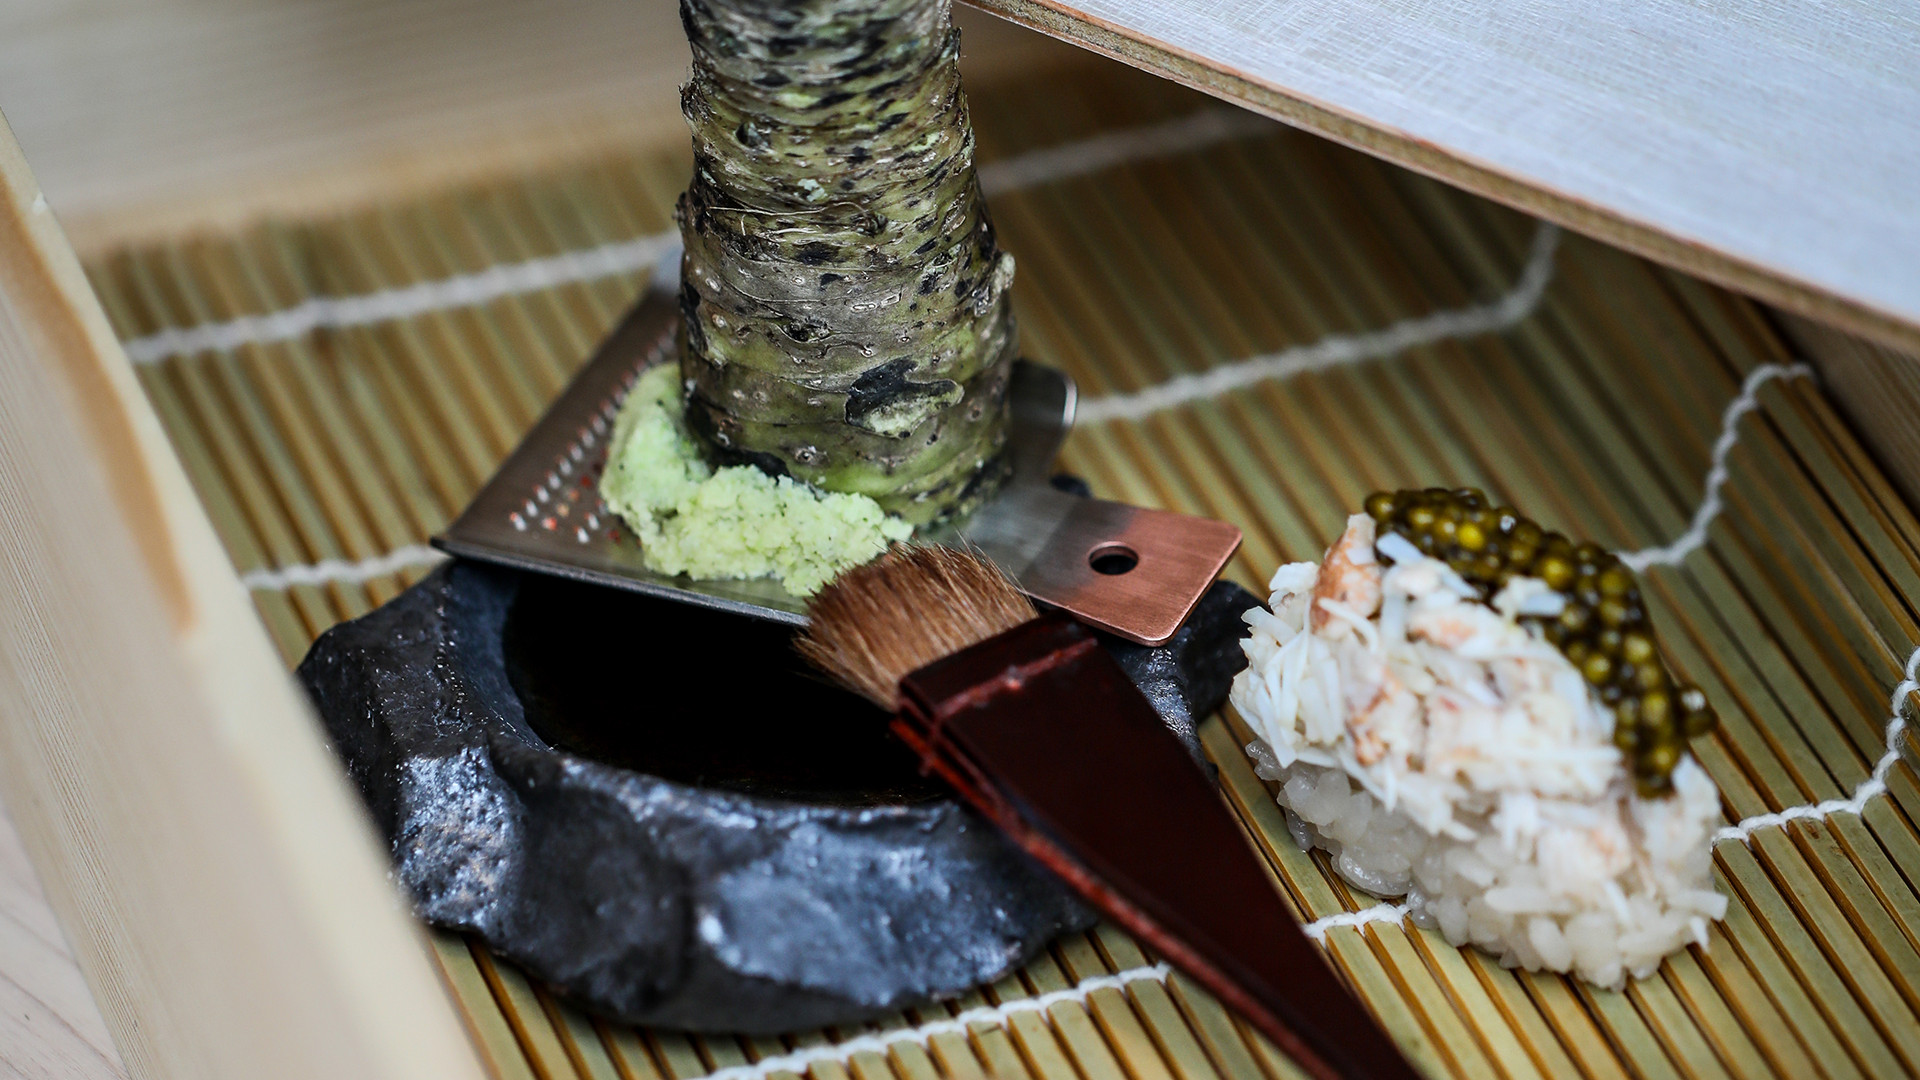 London's best Japanese restaurants – Endo at Rotunda